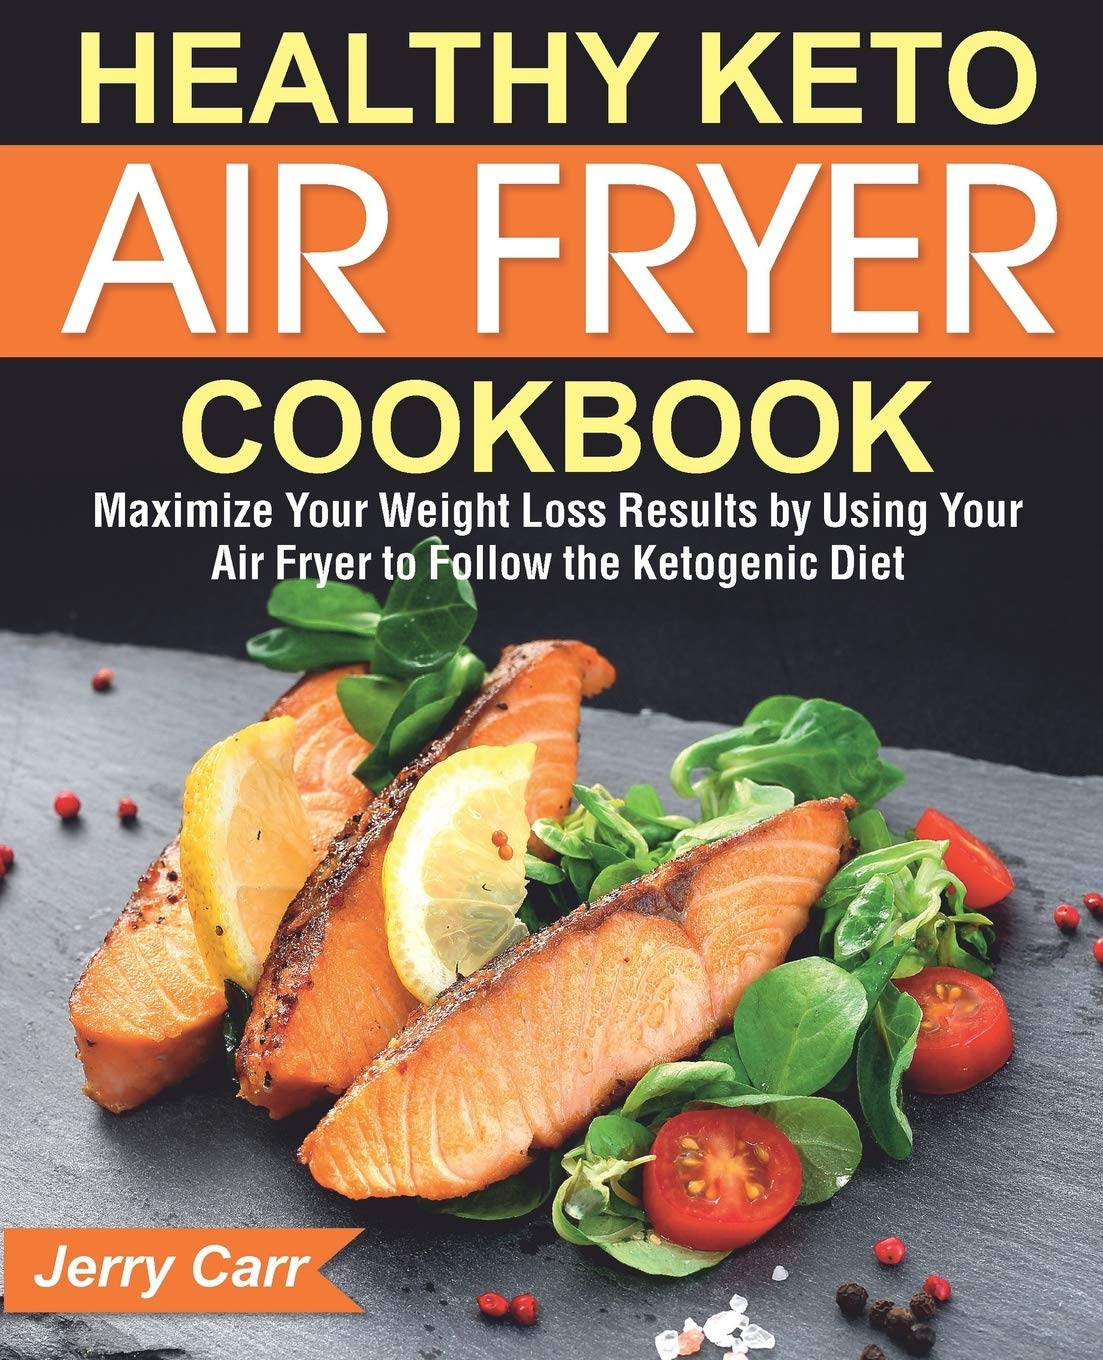 Healthy Keto Air Fryer Cookbook: Maximize Your Weight Loss Results by means of Using Your Air Fryer to Follow the Ketogenic Diet